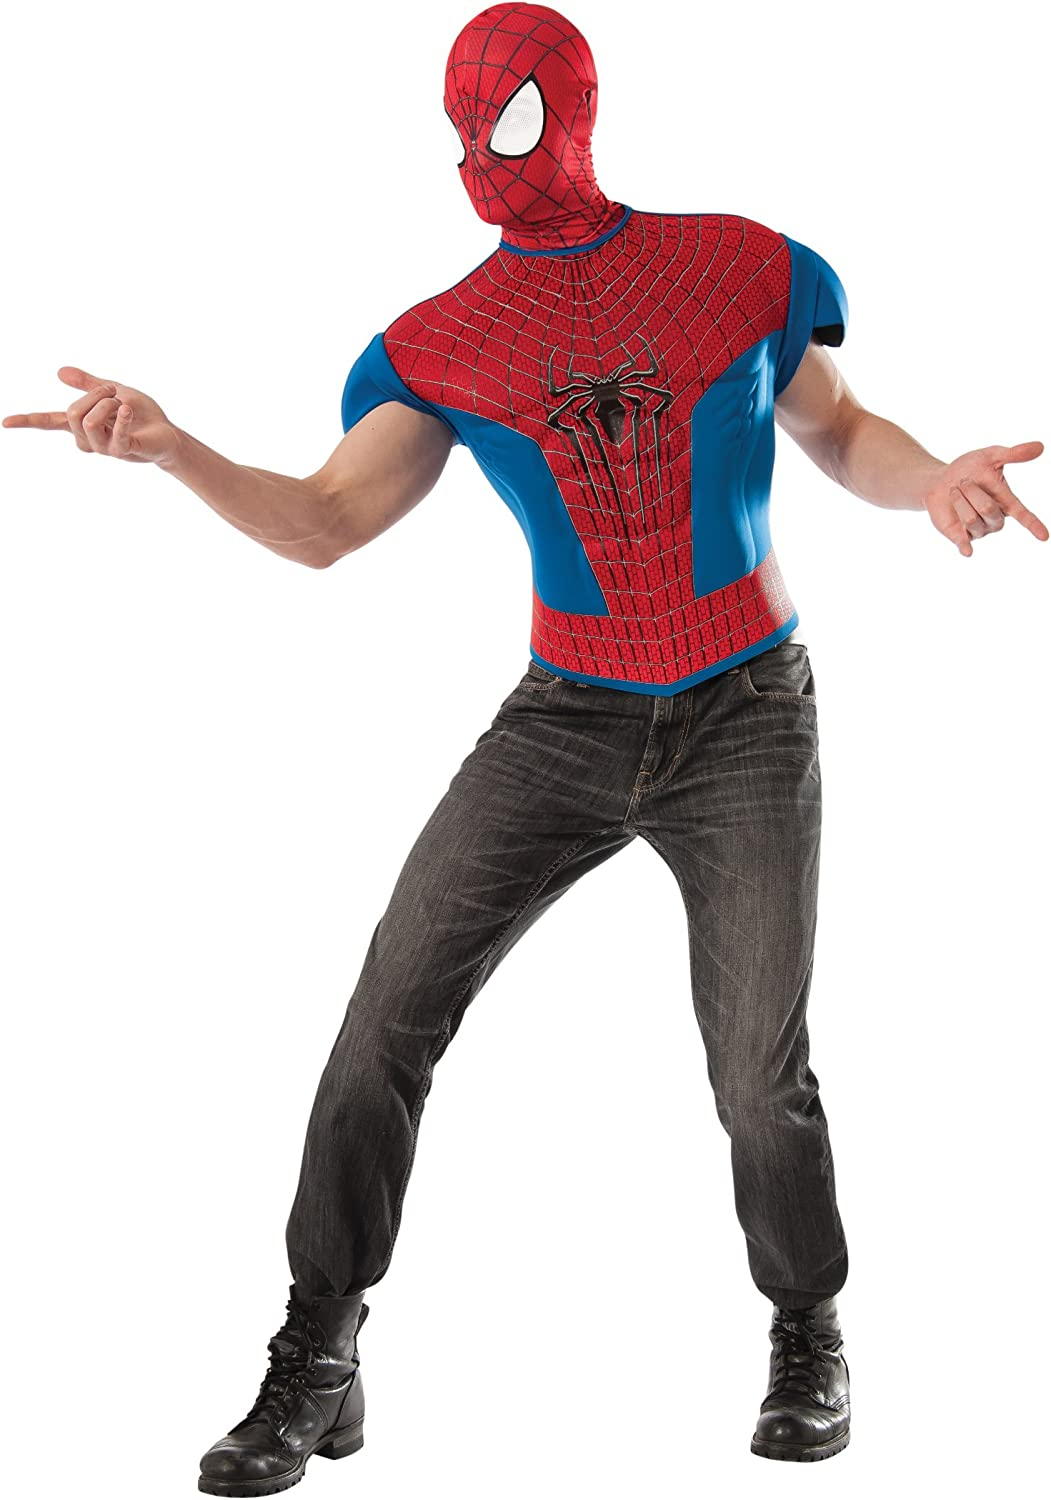 Rubie's Costume Men's Max 56% OFF Marvel Universe Mu Spiderman 2 Easy-to-use Amazing The